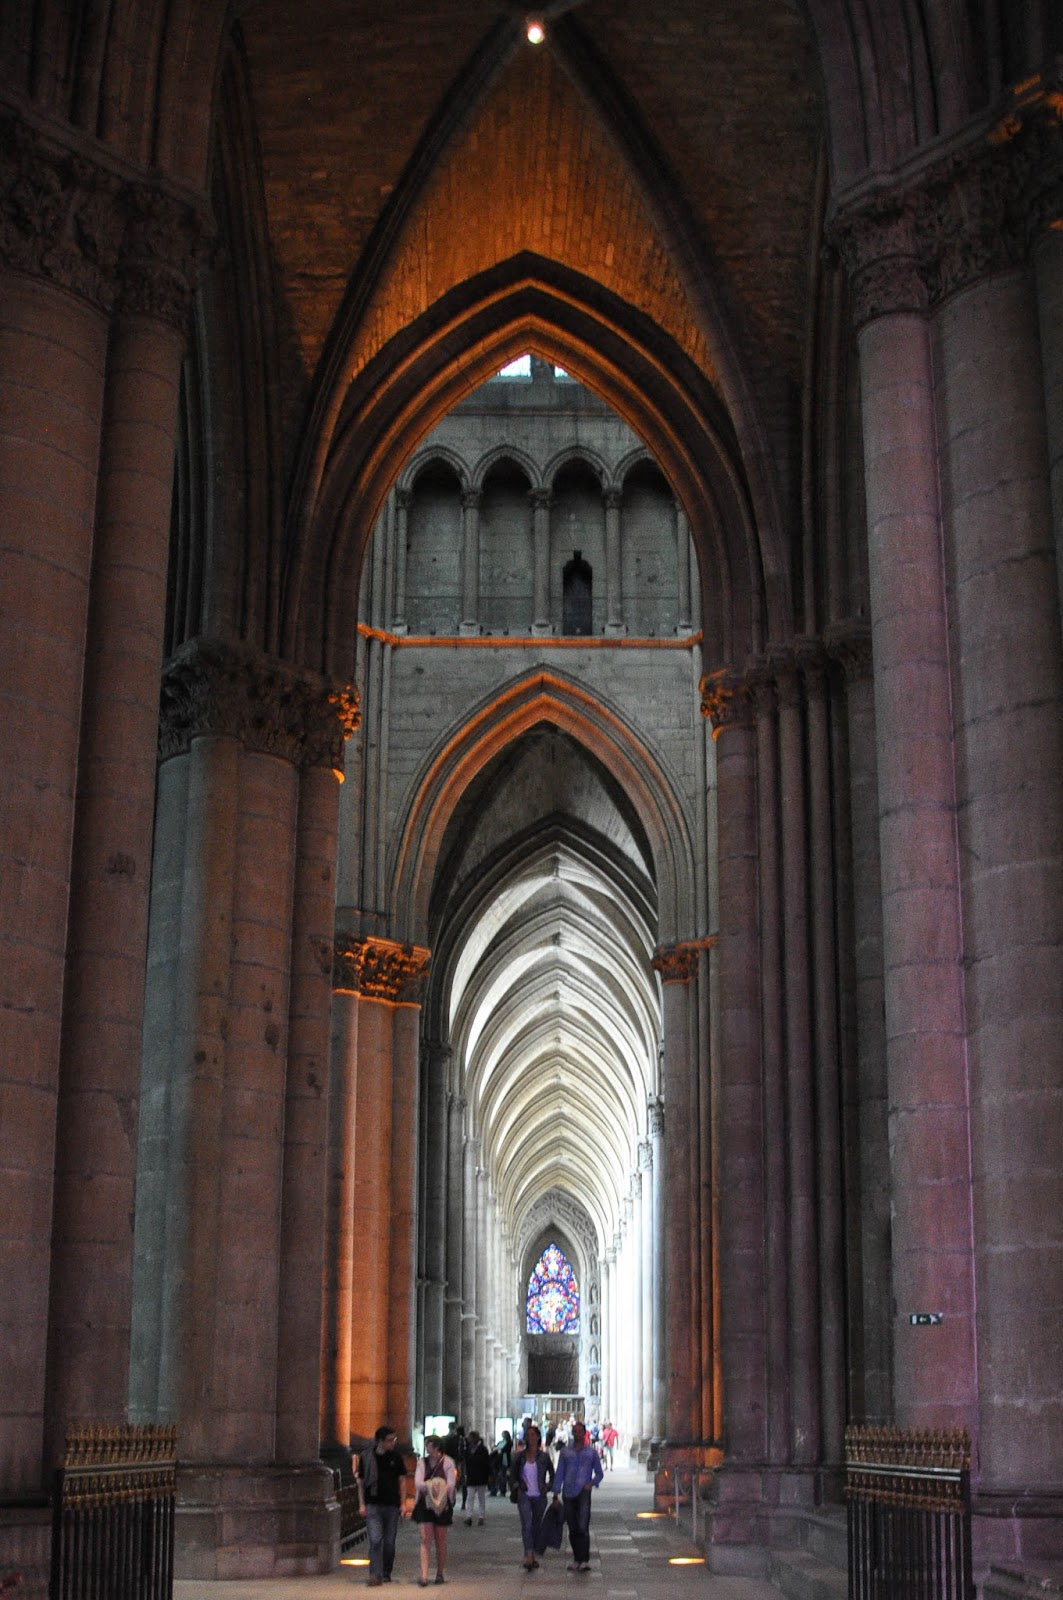 Inside Reims Cathedral, Reims, France